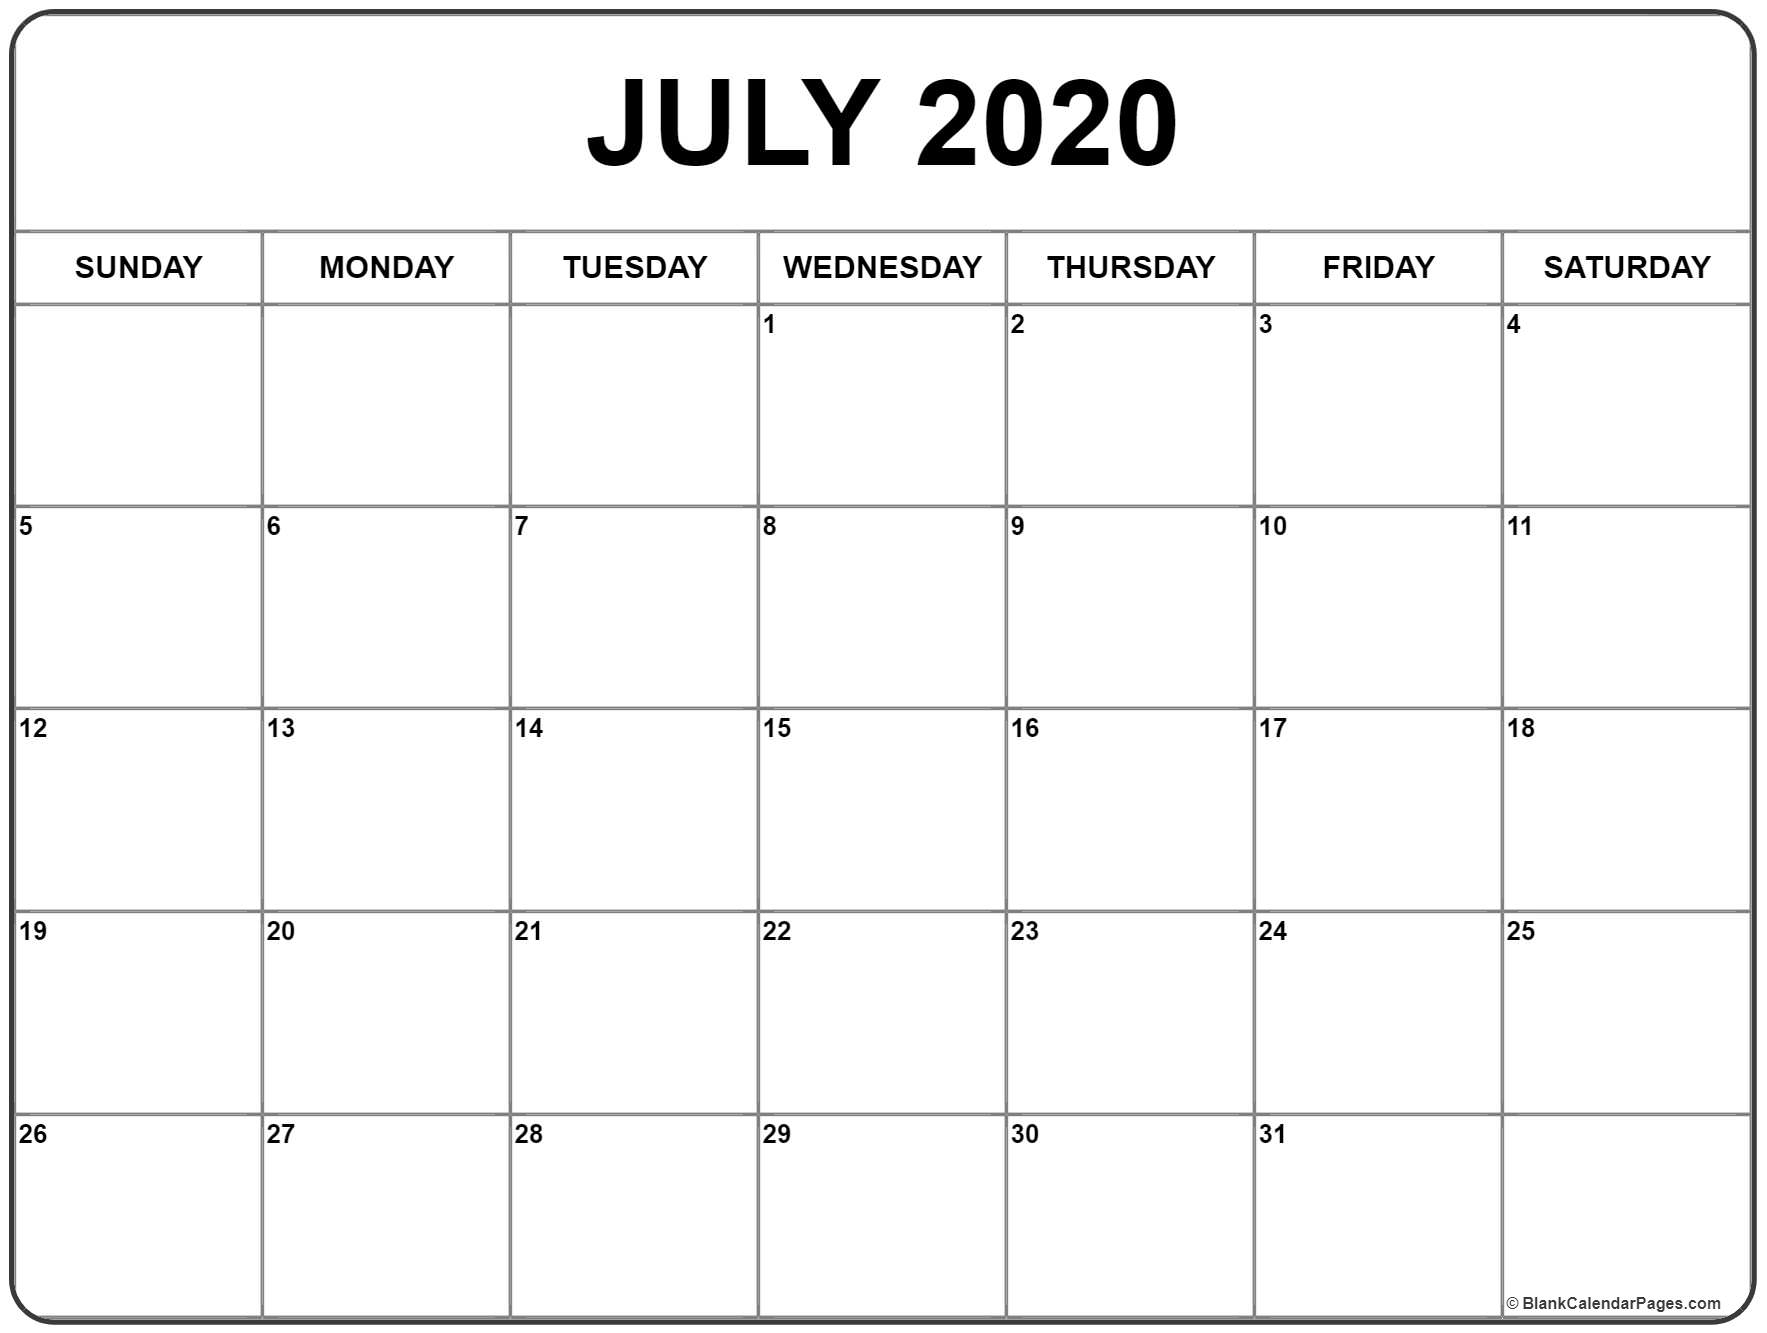 July 2020 Calendar | Free Printable Monthly Calendars throughout Large Box Printable Calendar 2020 Google